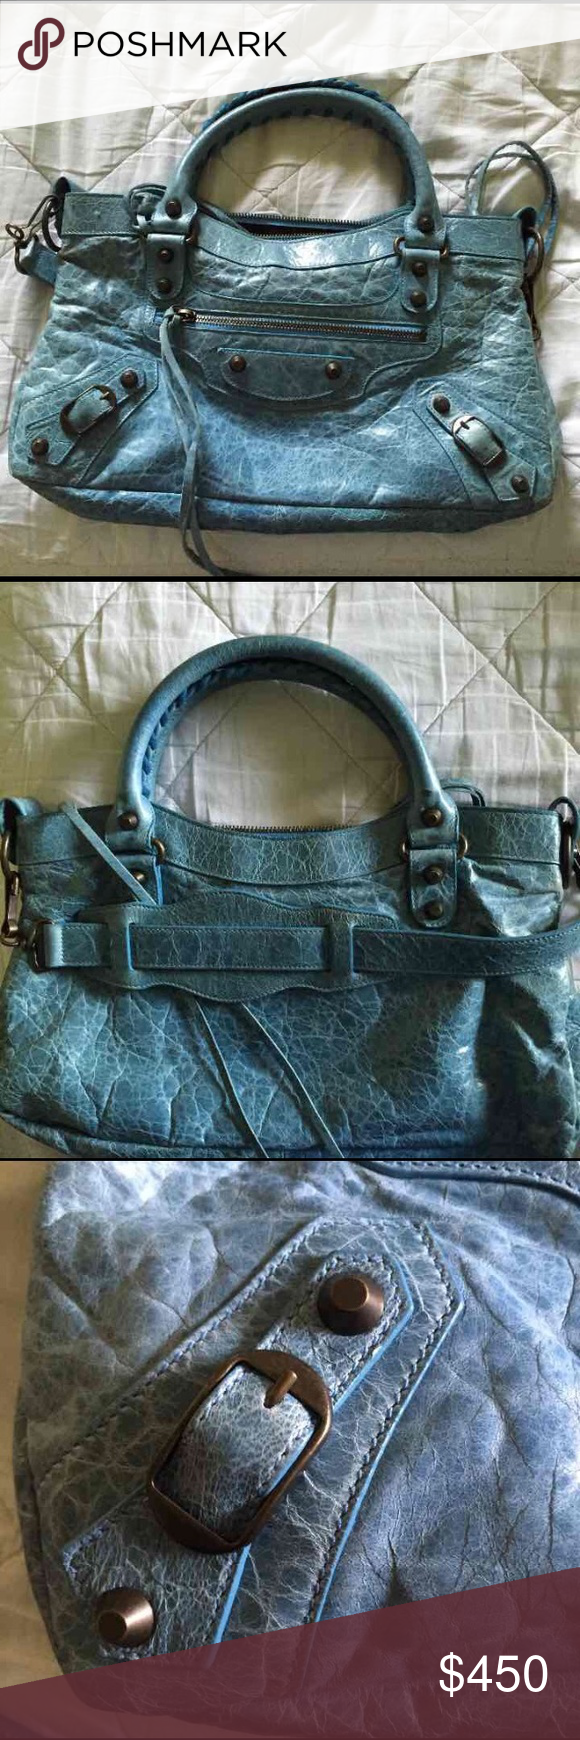 Balenciaga Bag Balenciaga First handbag. In a beautiful limited edition blue color. It's in amazing condition. No wear on the handles. No scratches or stains. Interior is in wonderful condition as well. Feel free to ask more questions and I can also send picture for anyone who wants them. Balenciaga Bags Shoulder Bags